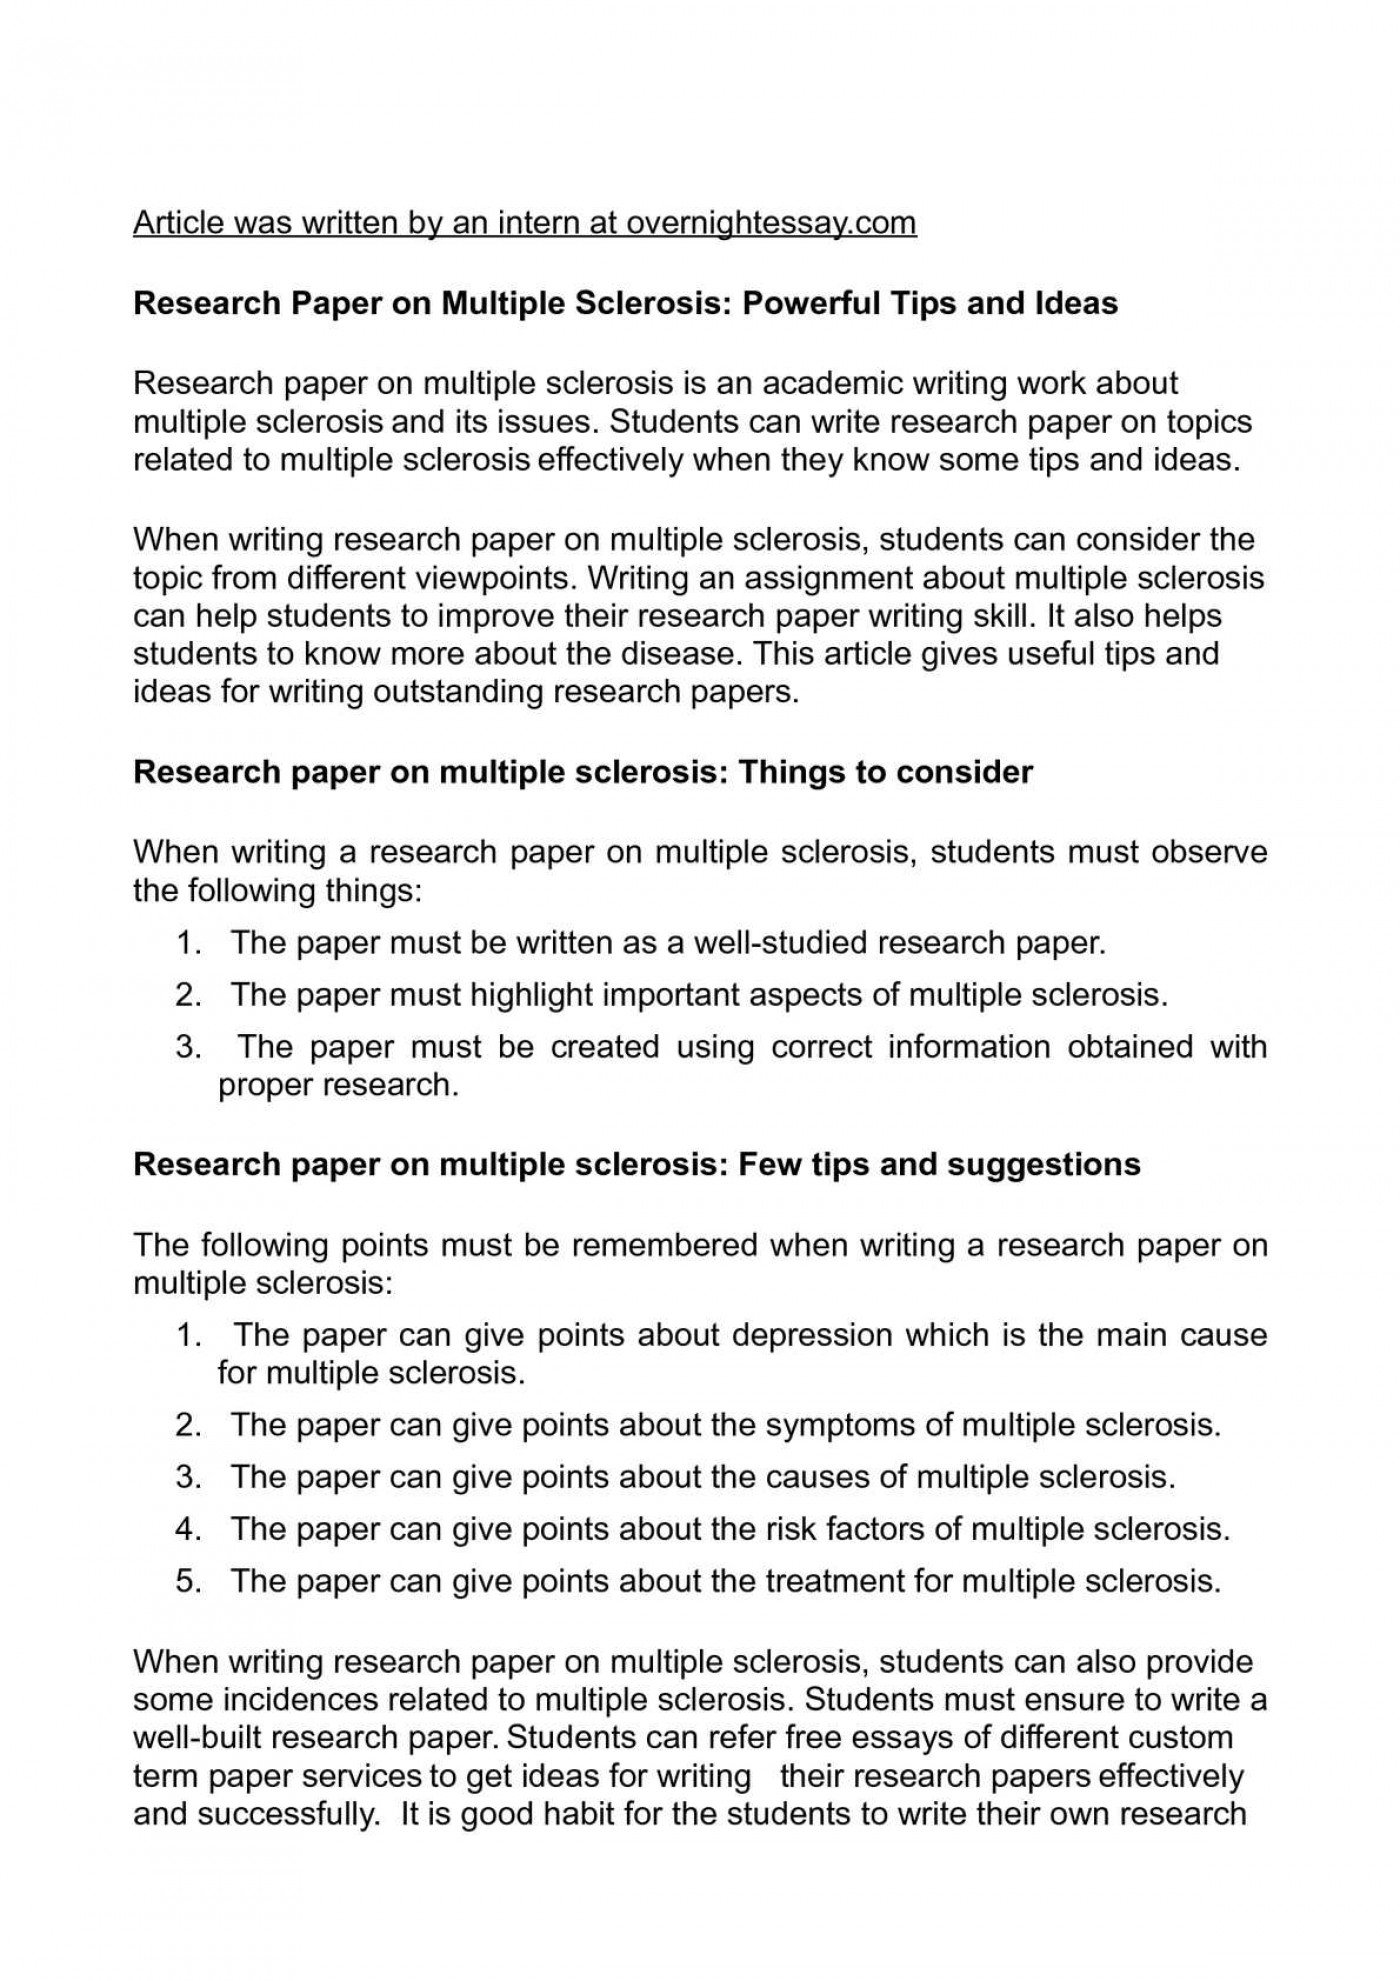 015 P1 Research Paper Write Frightening Papers How To A History Introduction Fast Youtube For Money 1400